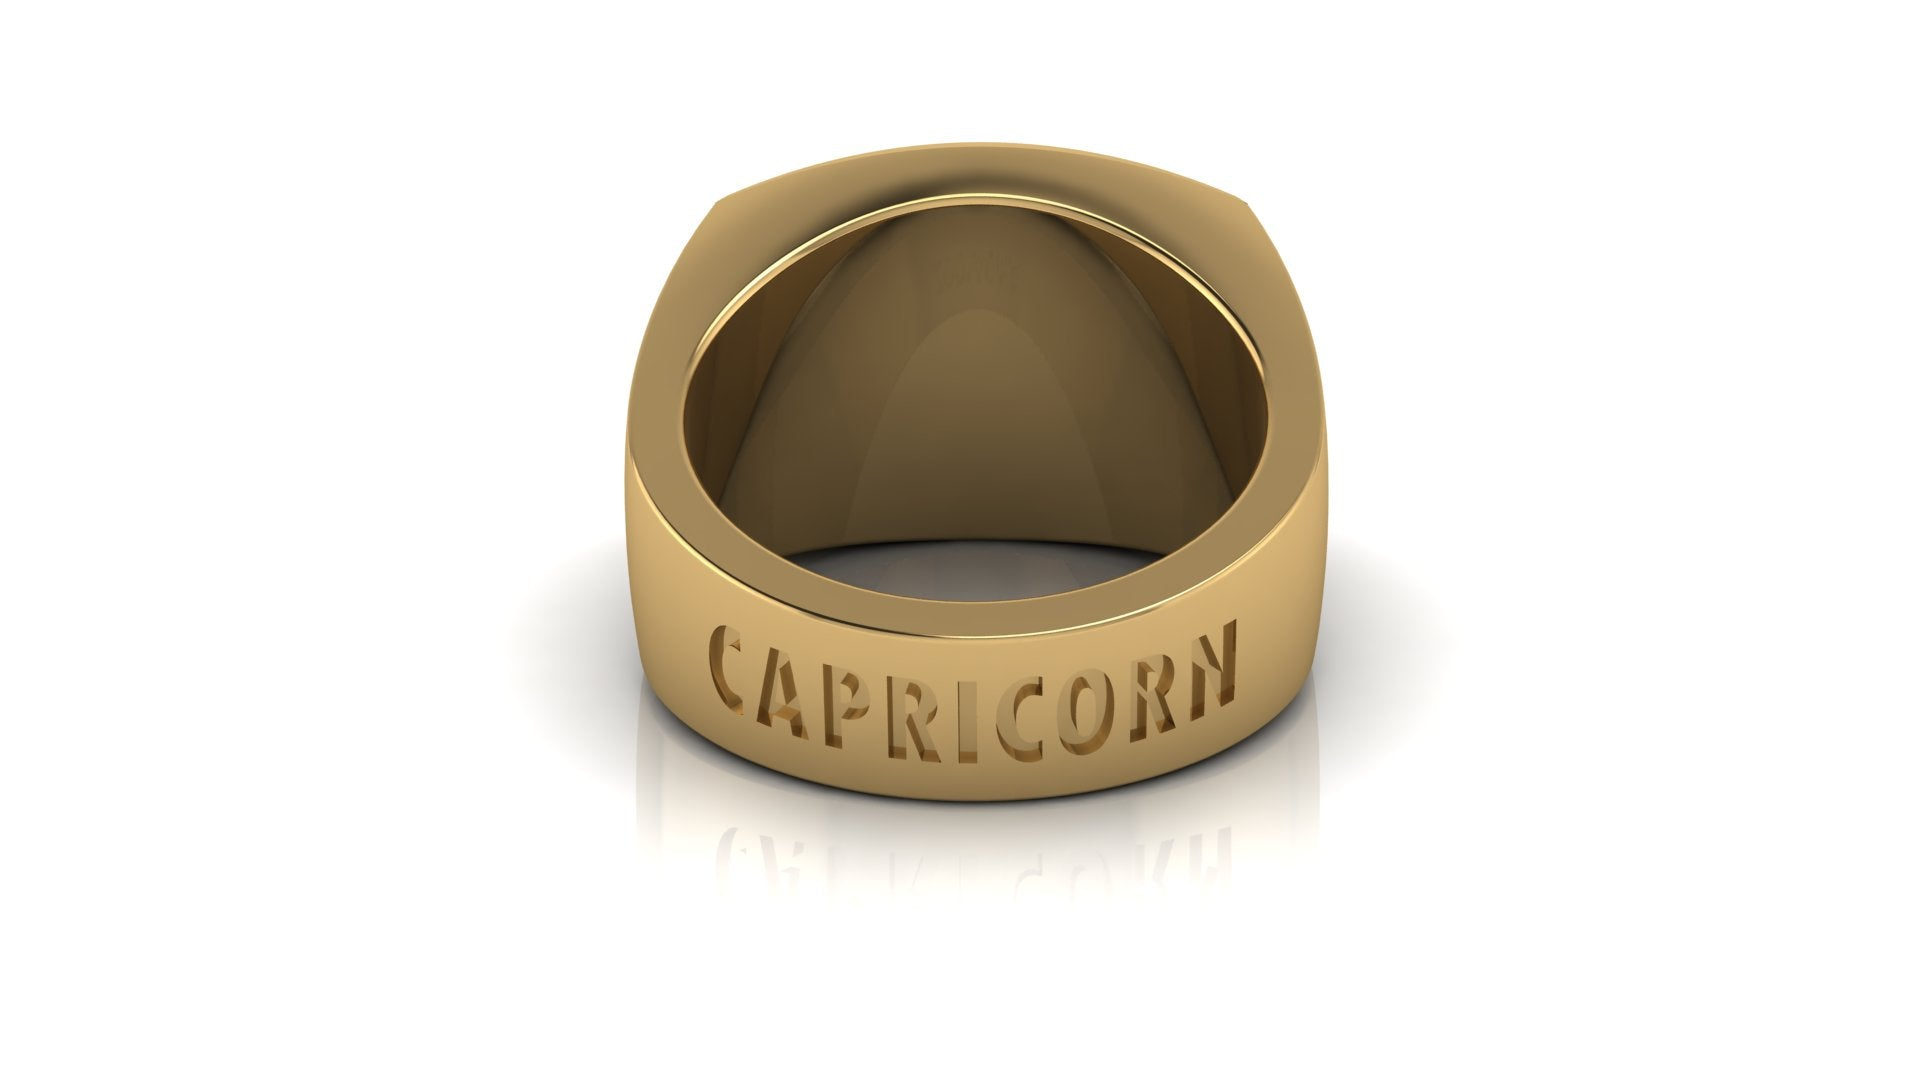 Capricorn Gold&Bold mens ring